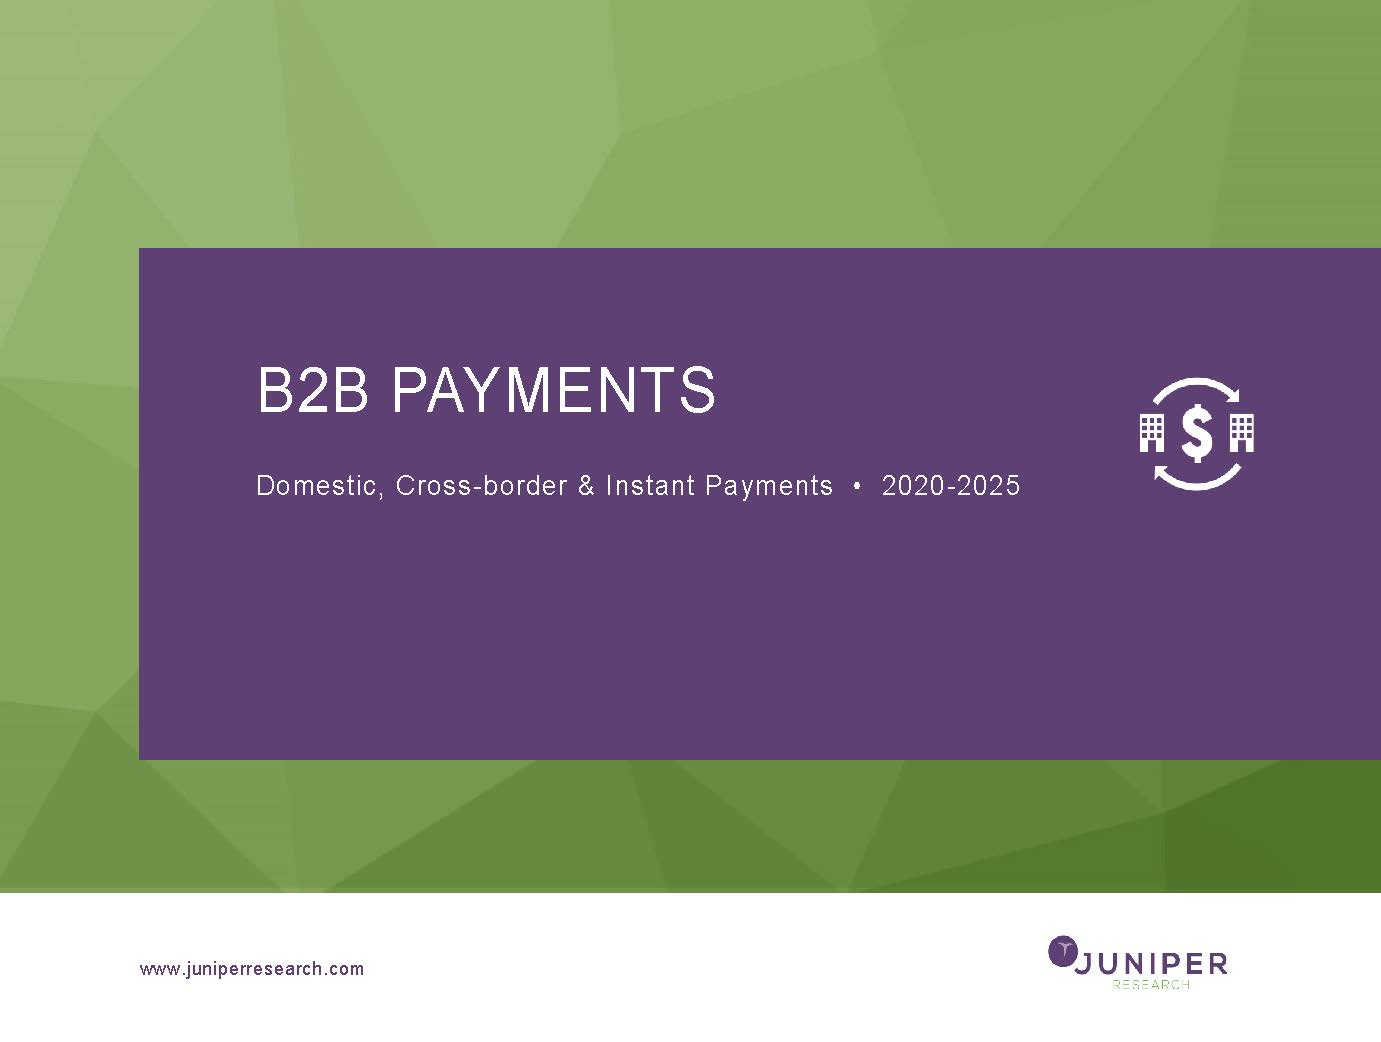 B2B Payments: Domestic, Cross-border & Instant Payments 2020-2025